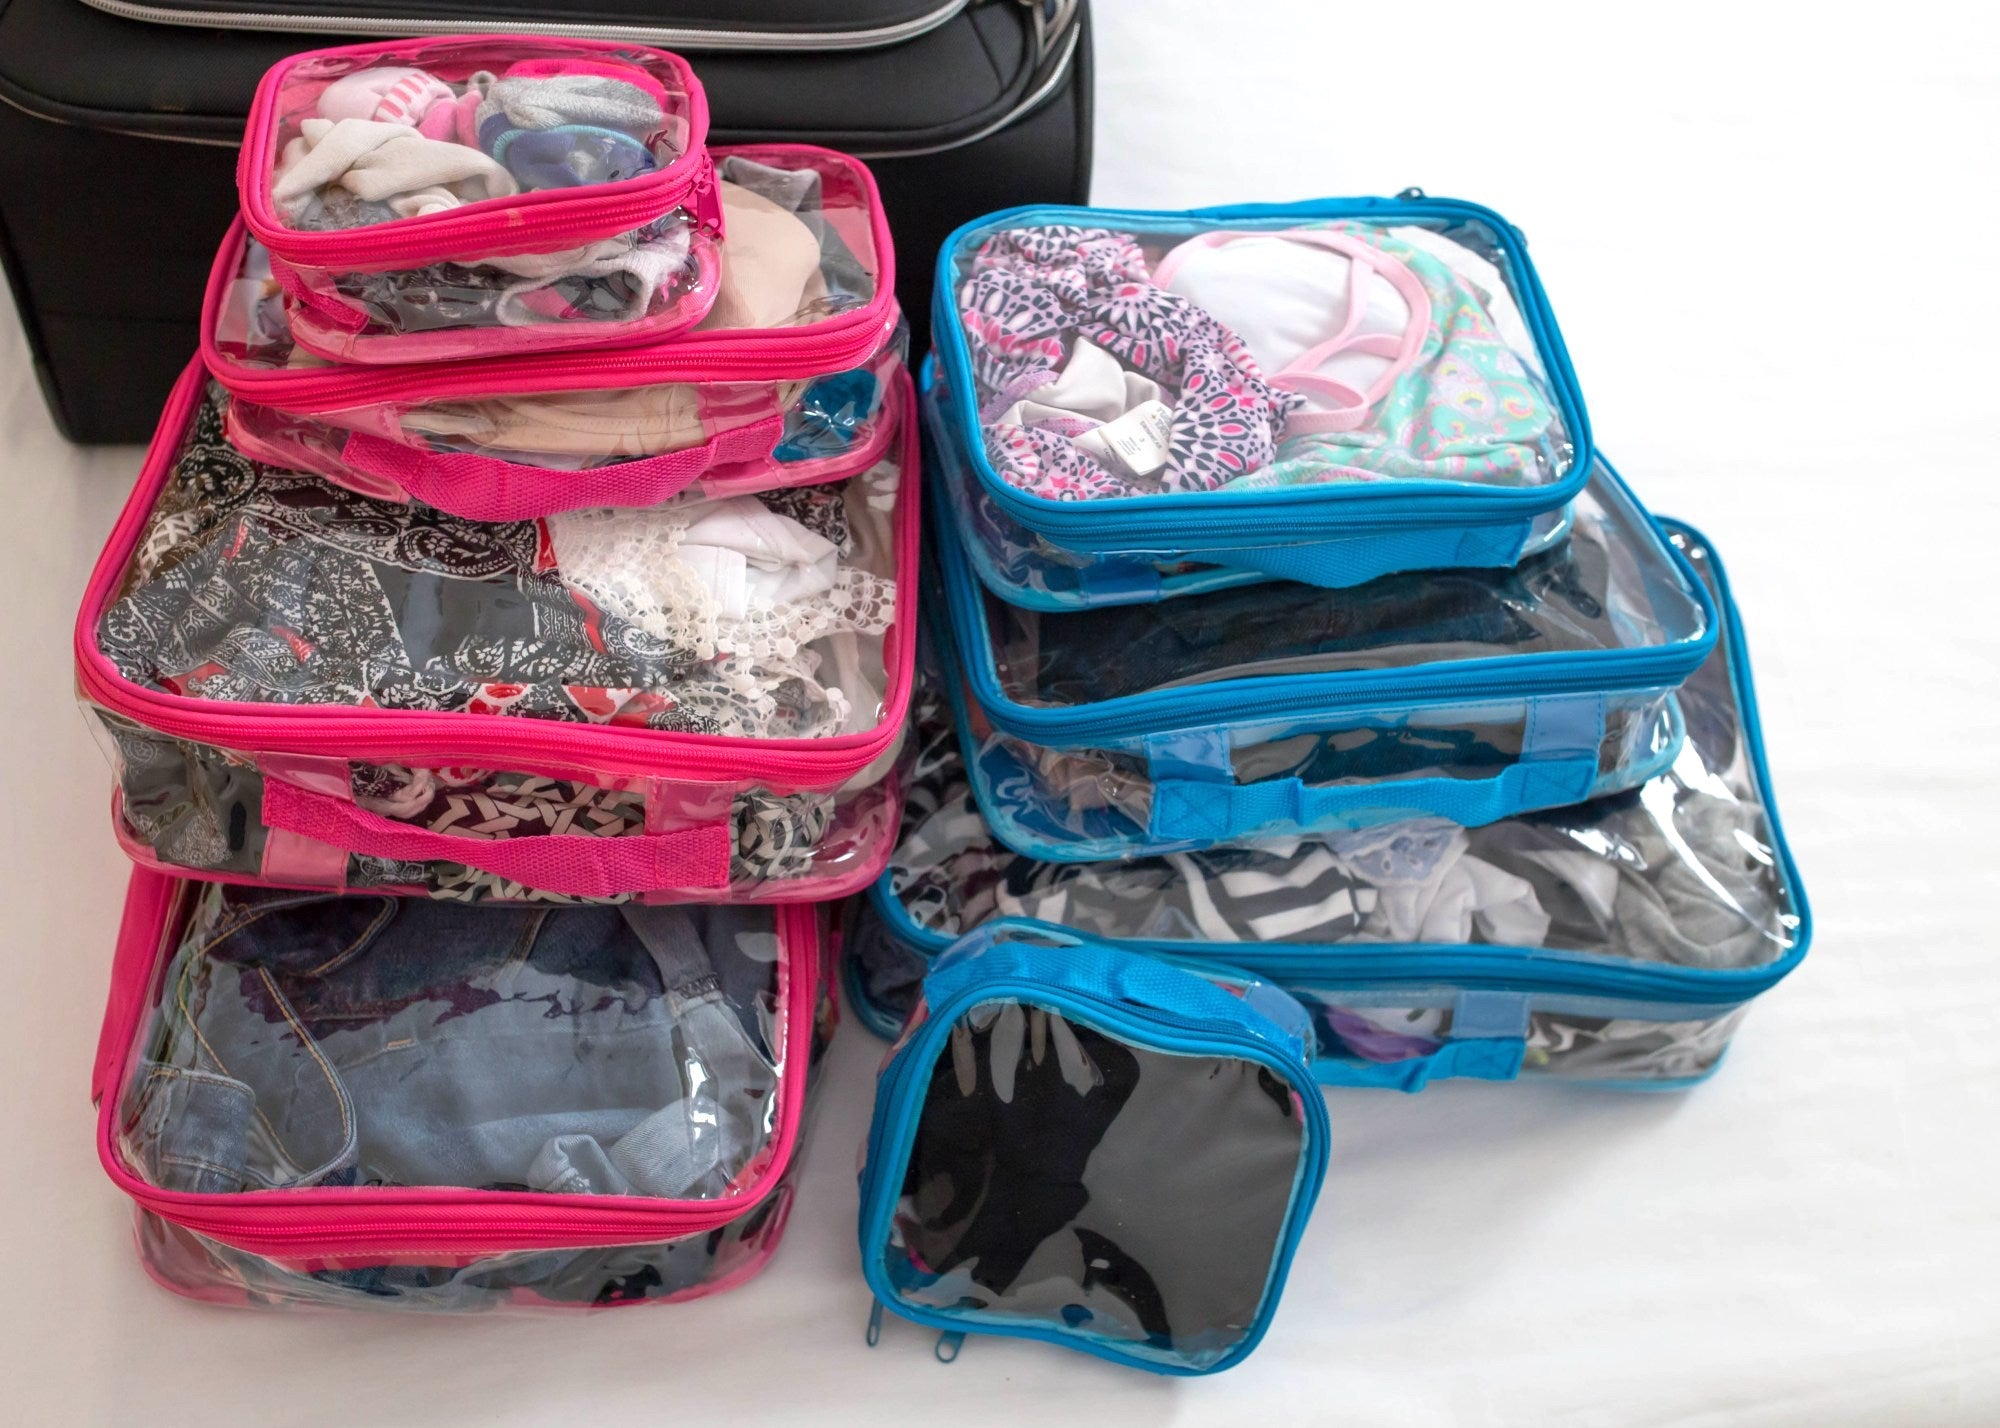 Clothes packed in packing cubes